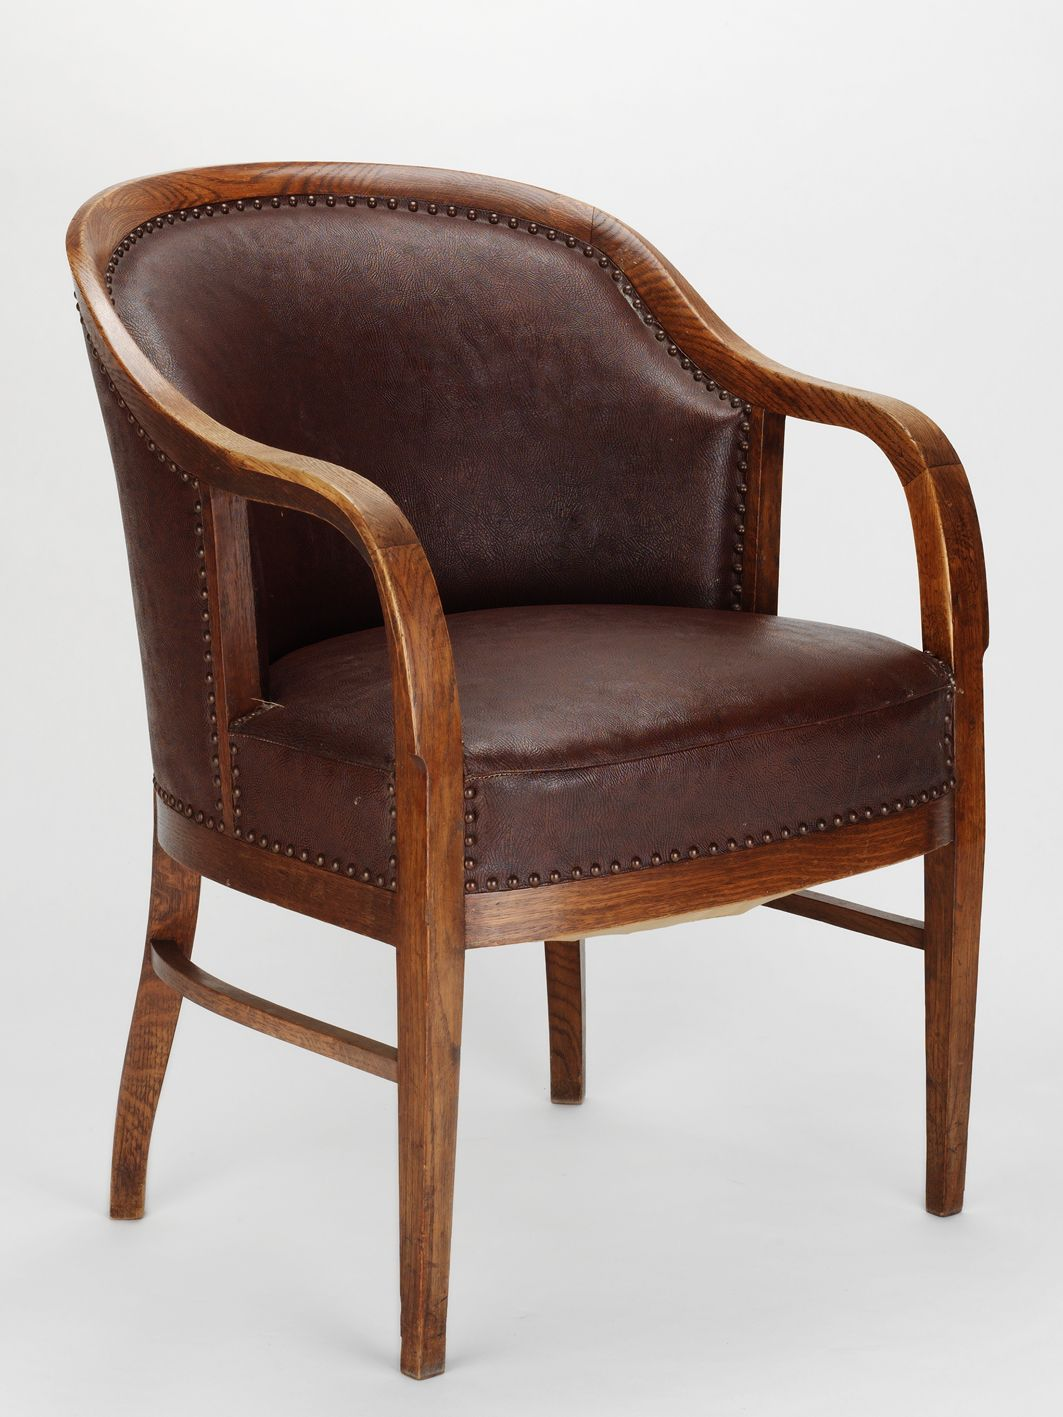 Bruno paul fauteuil 1930 chairs pinterest m bel for Sessel jugendstil